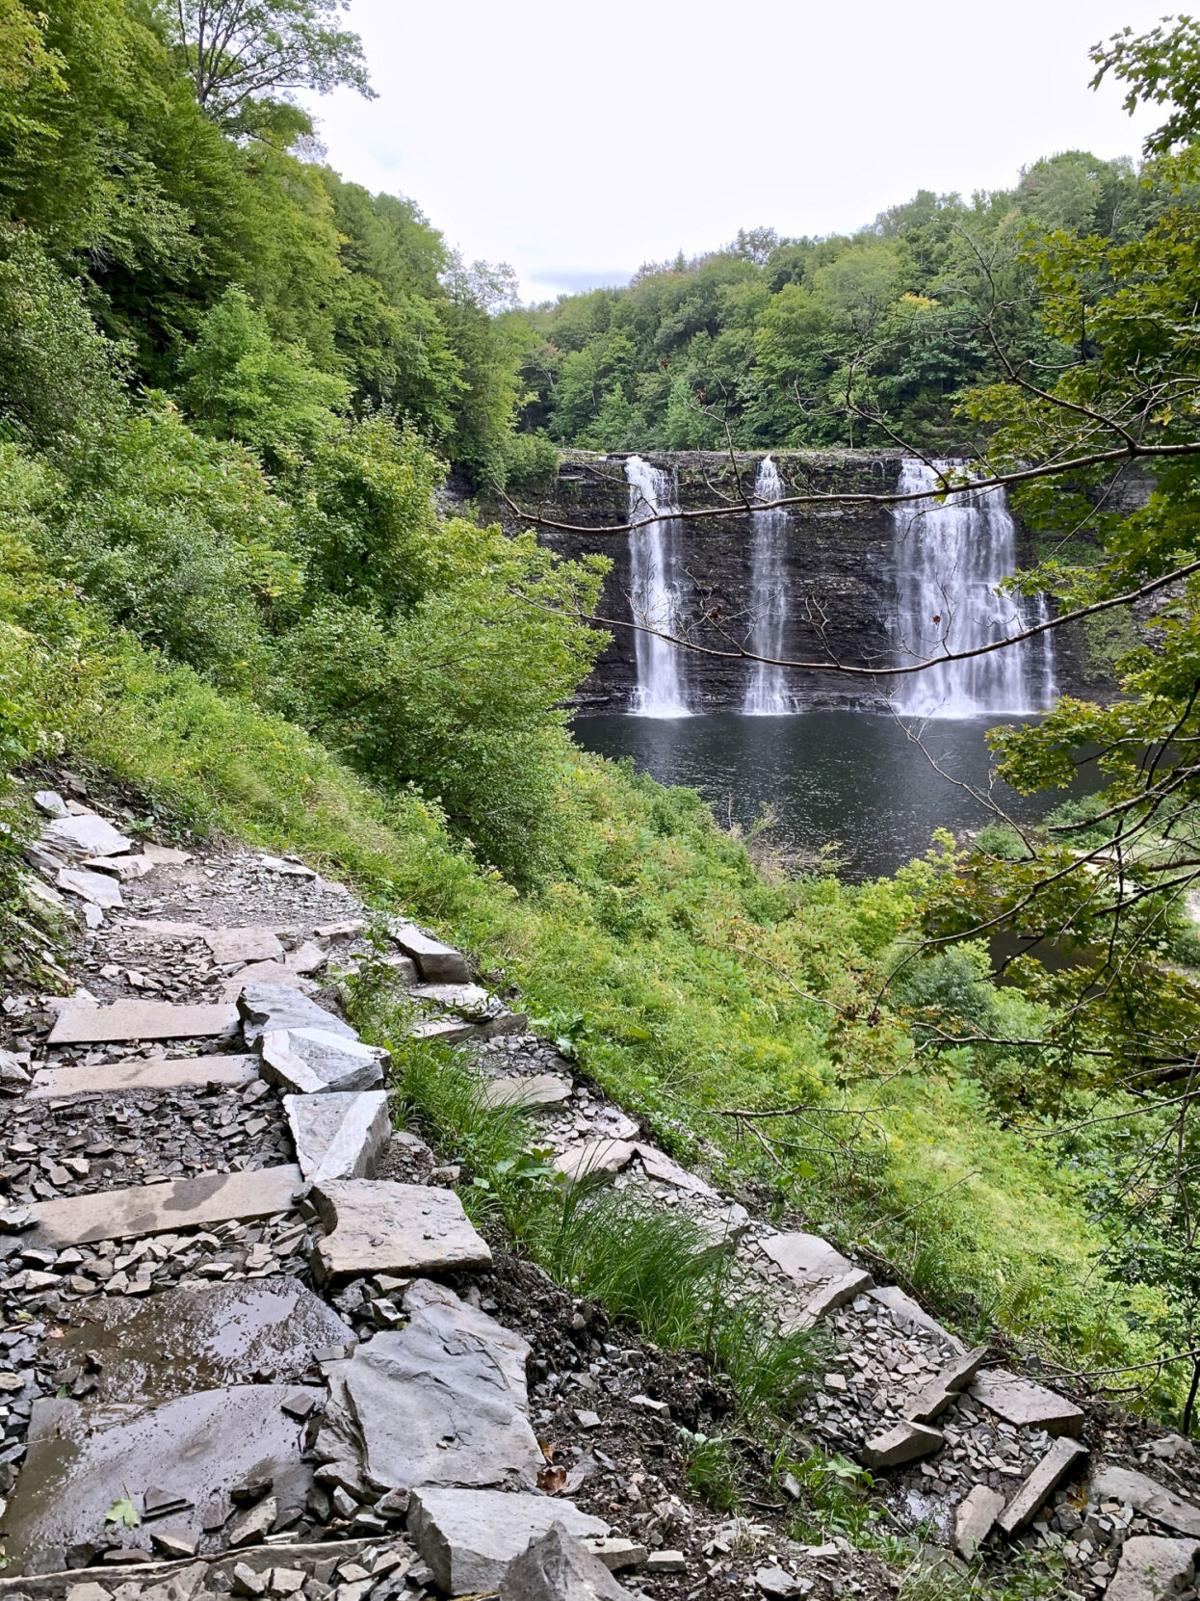 Salmon River Falls Gorge Trail reopened; still a demanding hike